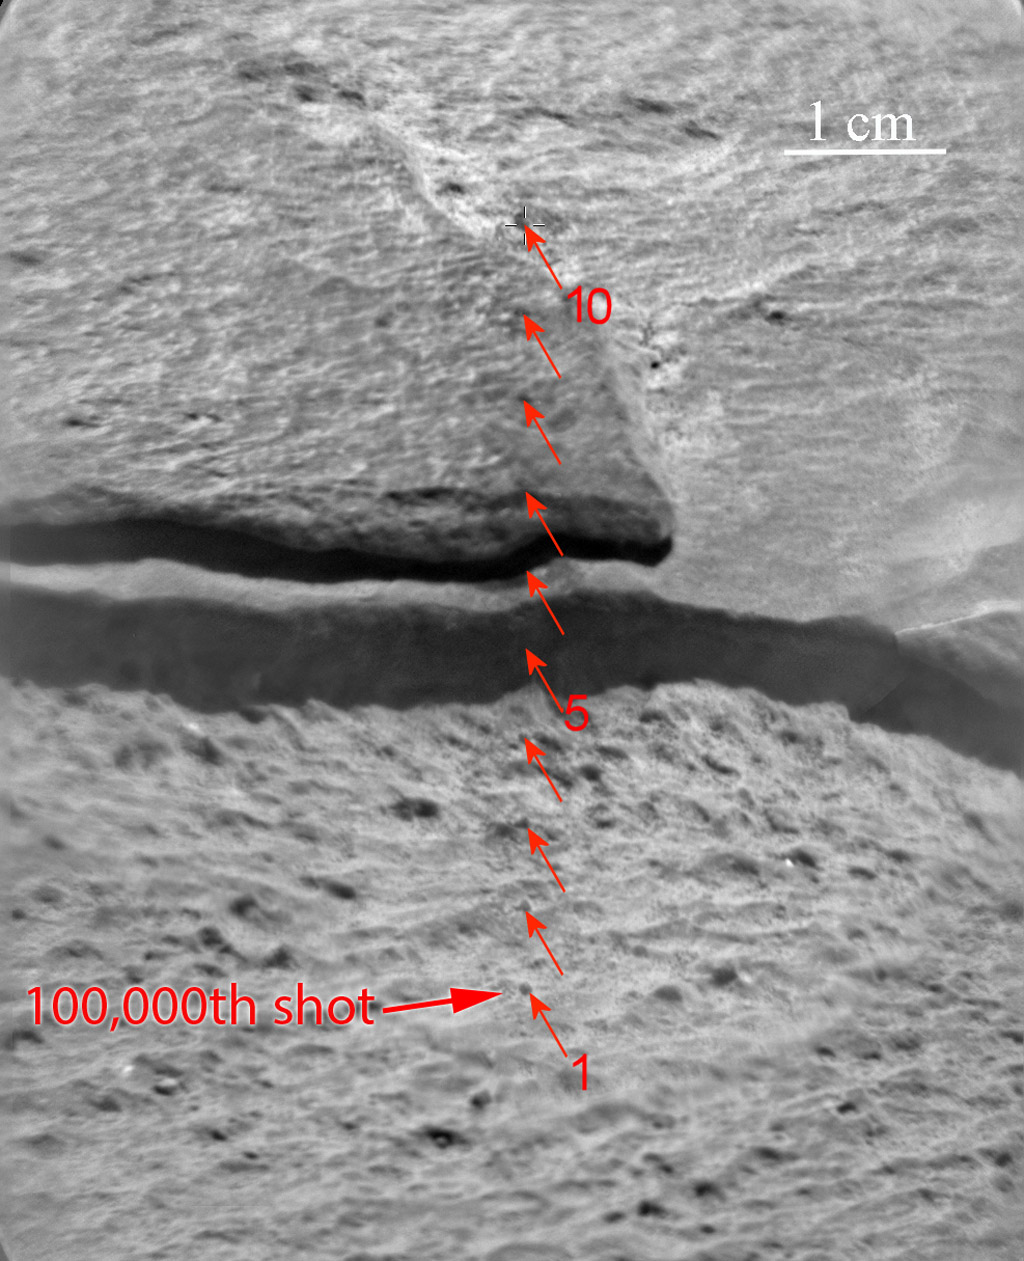 Since landing on Mars in August 2012, NASA's Curiosity Mars rover has fired the laser on its Chemistry and Camera (ChemCam) instrument more than 100,000 times at rock and soil targets up to about 23 feet (7 meters) away.